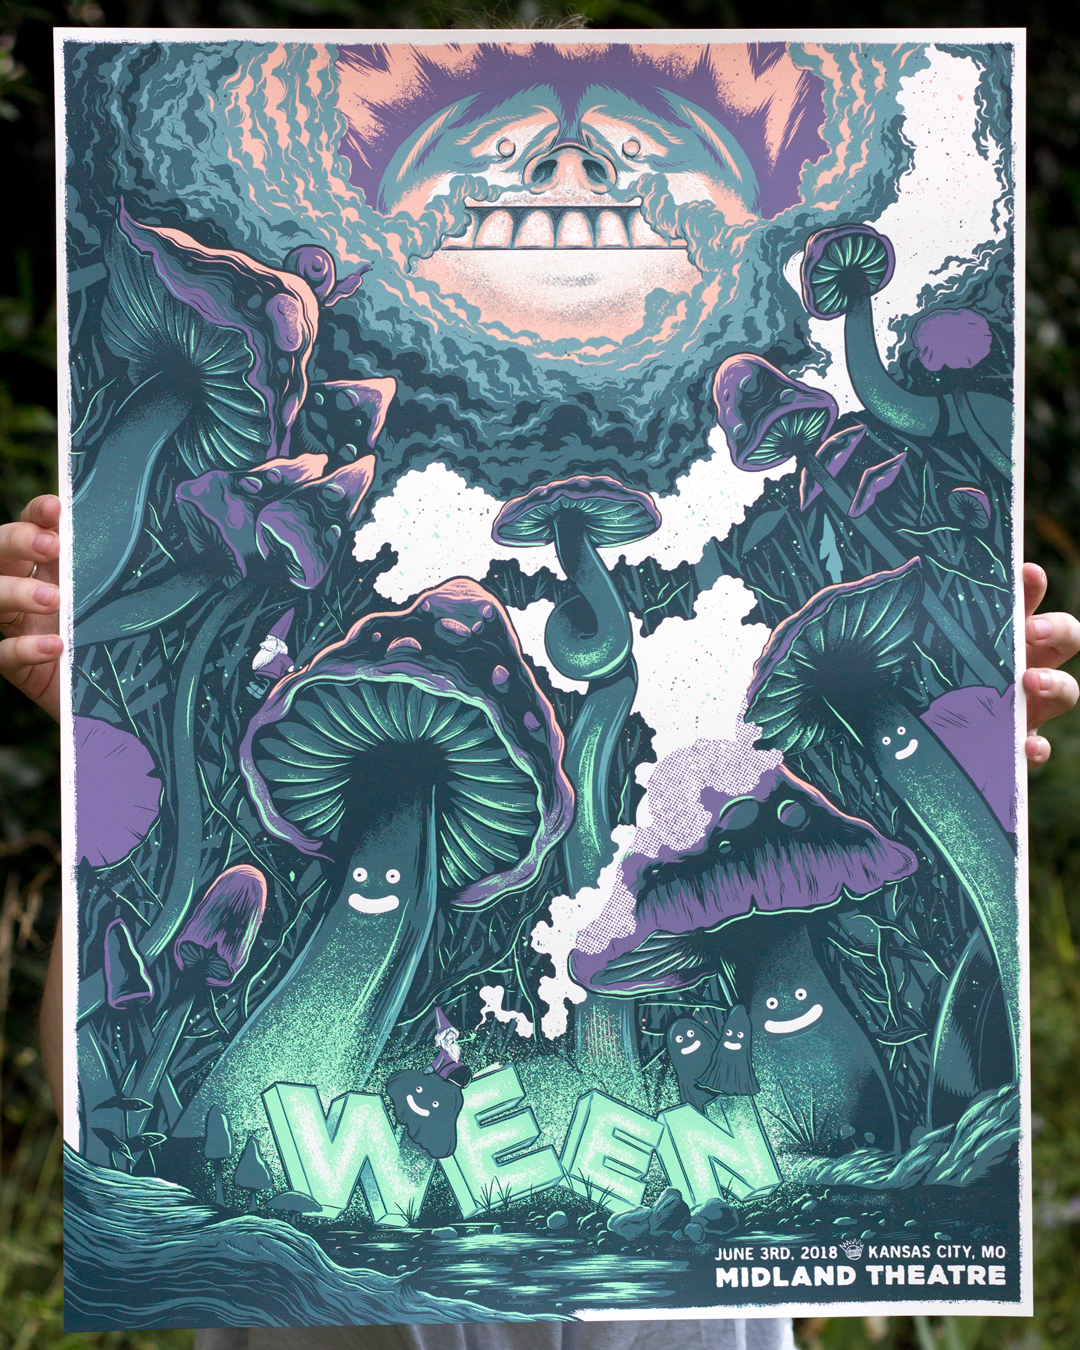 Ween Kansas City Poster Gigposter by Paul Kreizenbeck